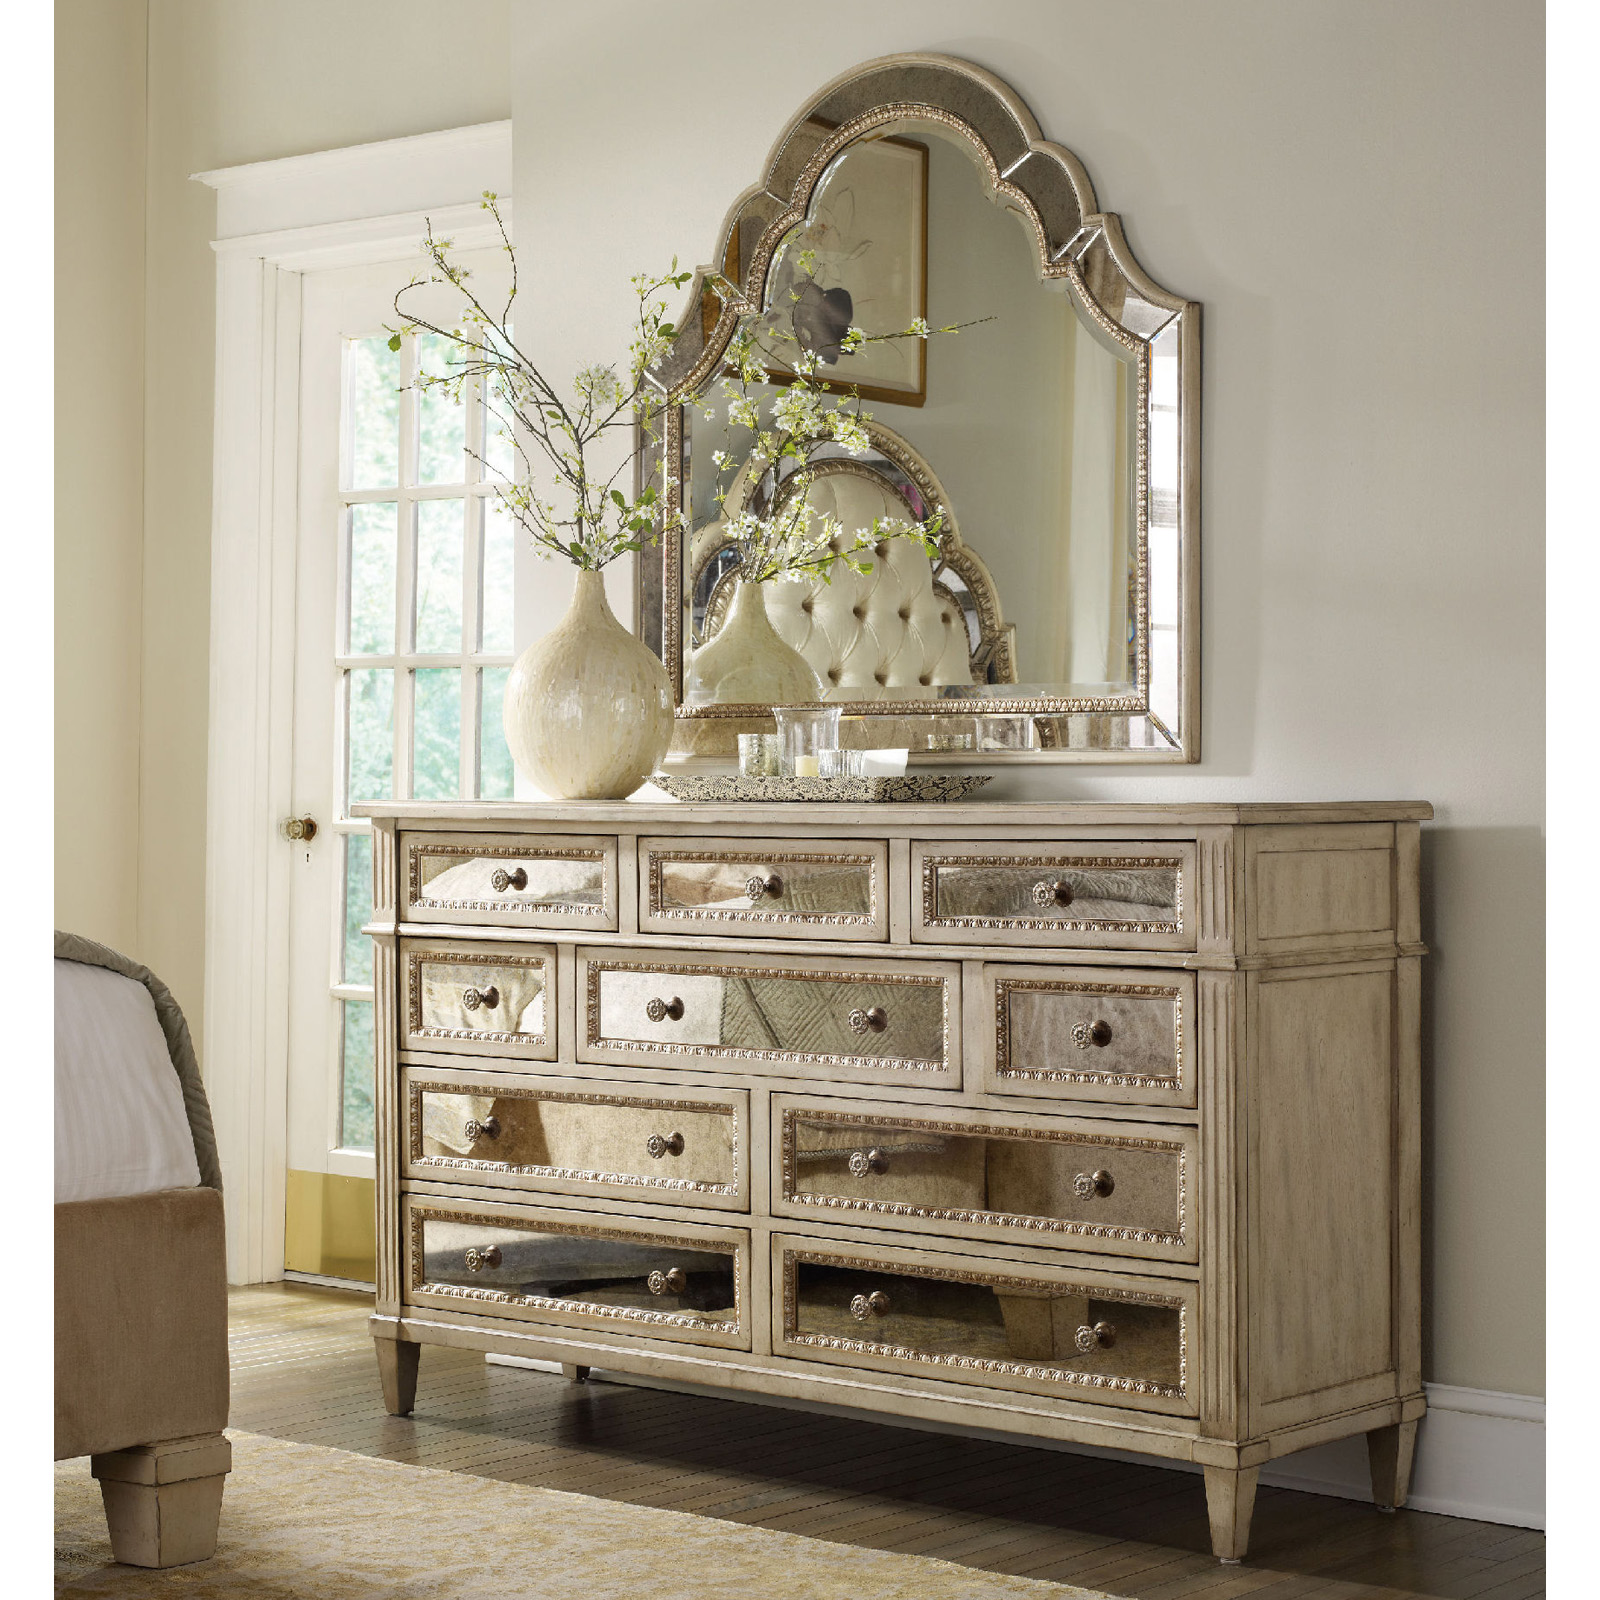 hooker bedroom furniture.  Hooker Furniture Sanctuary 10 Drawer Mirrored Dresser Hayneedle